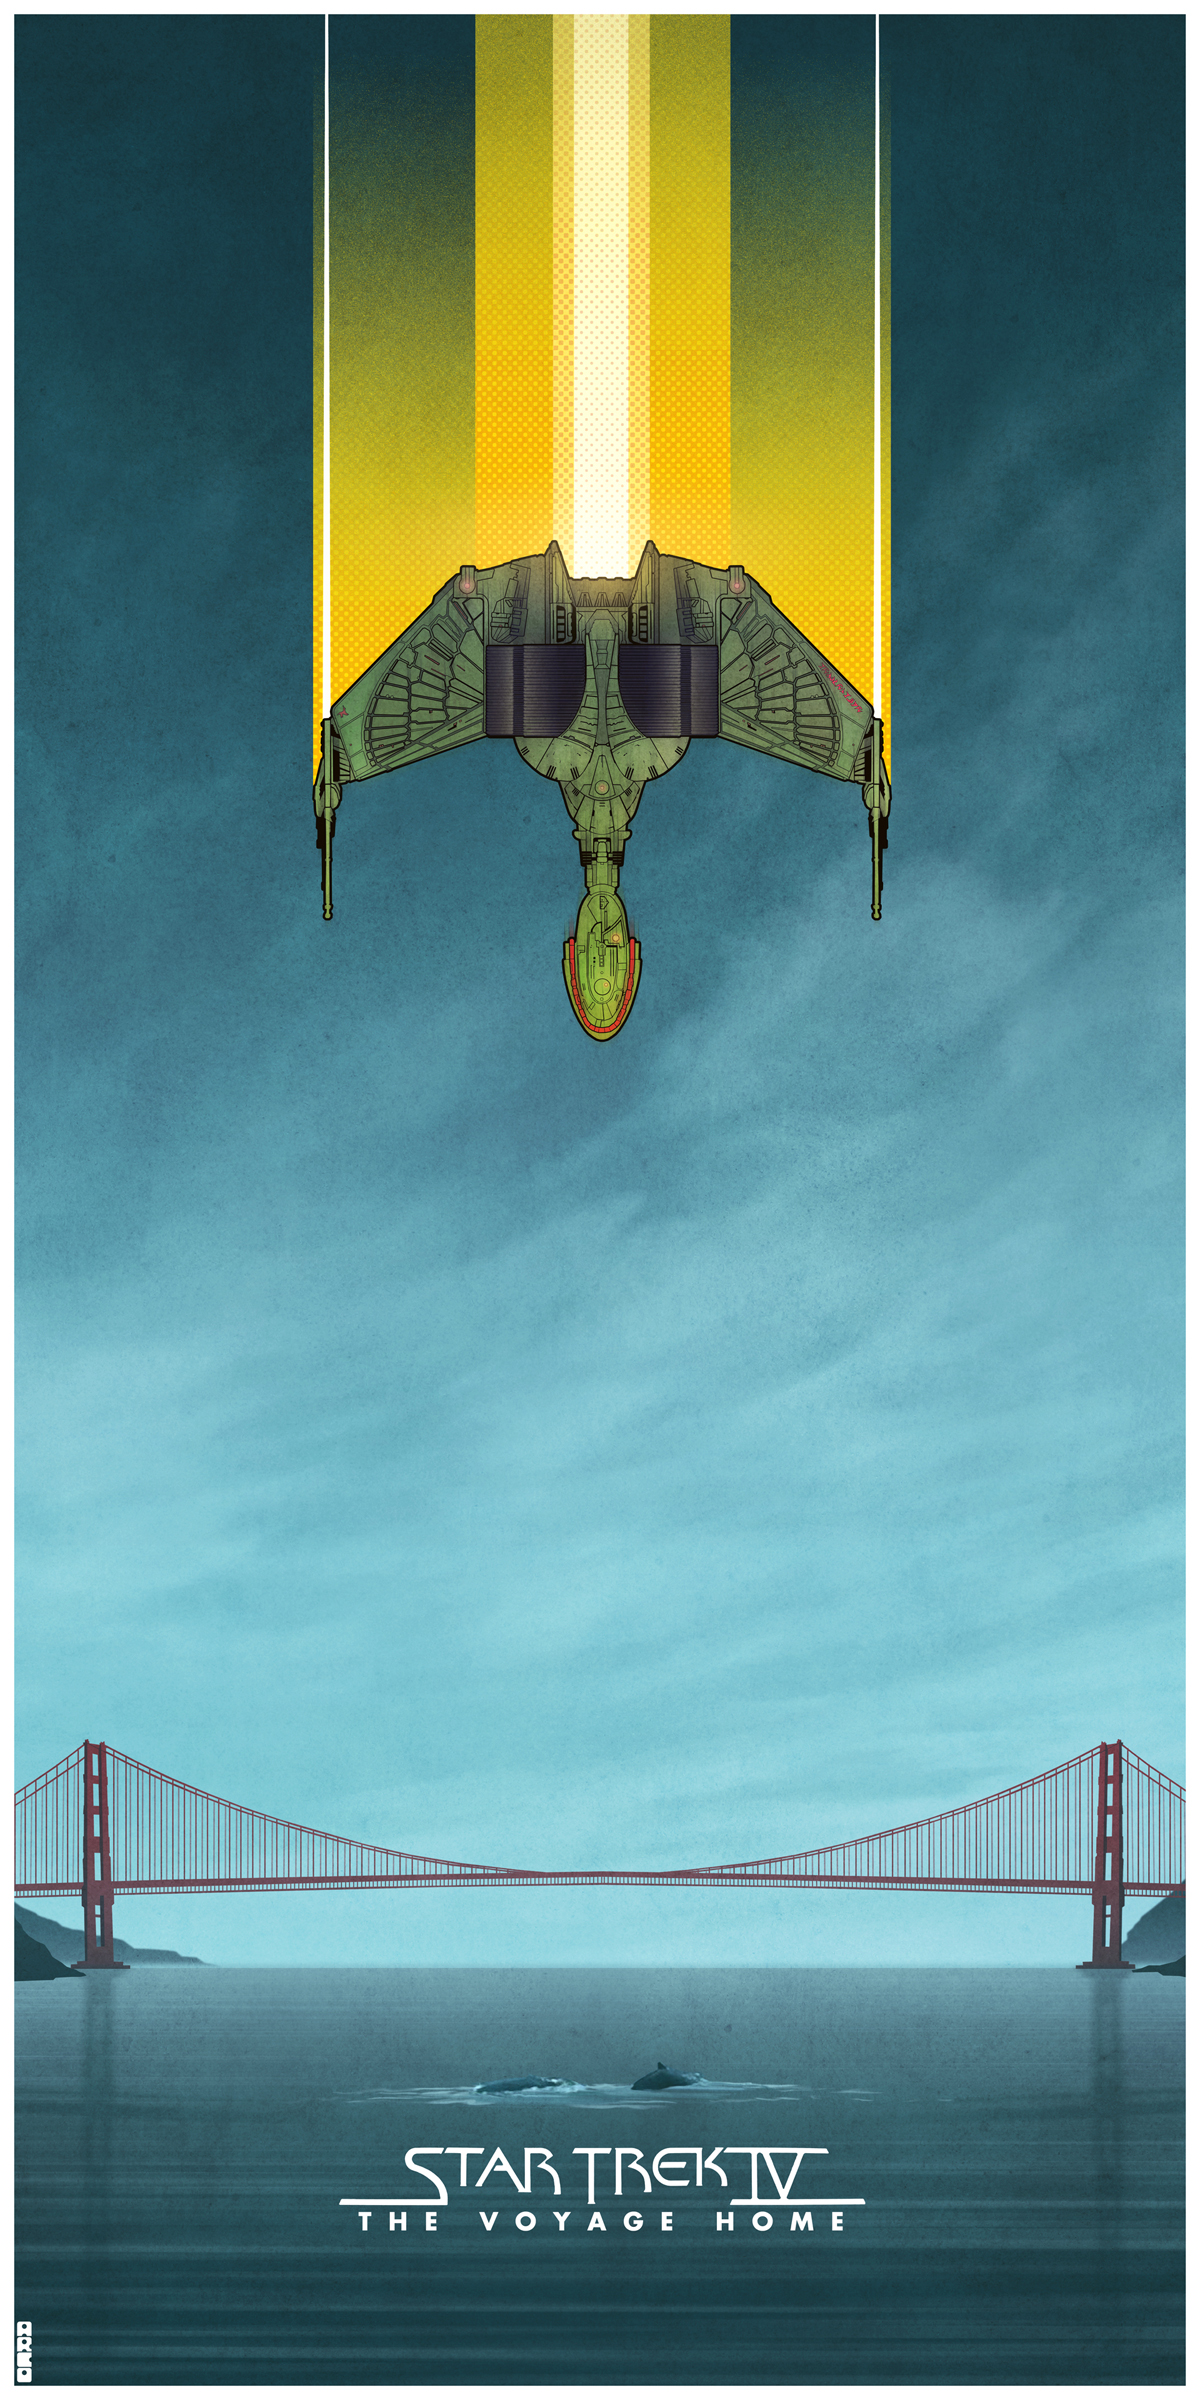 Star Trek Movie Posters By Matt Ferguson